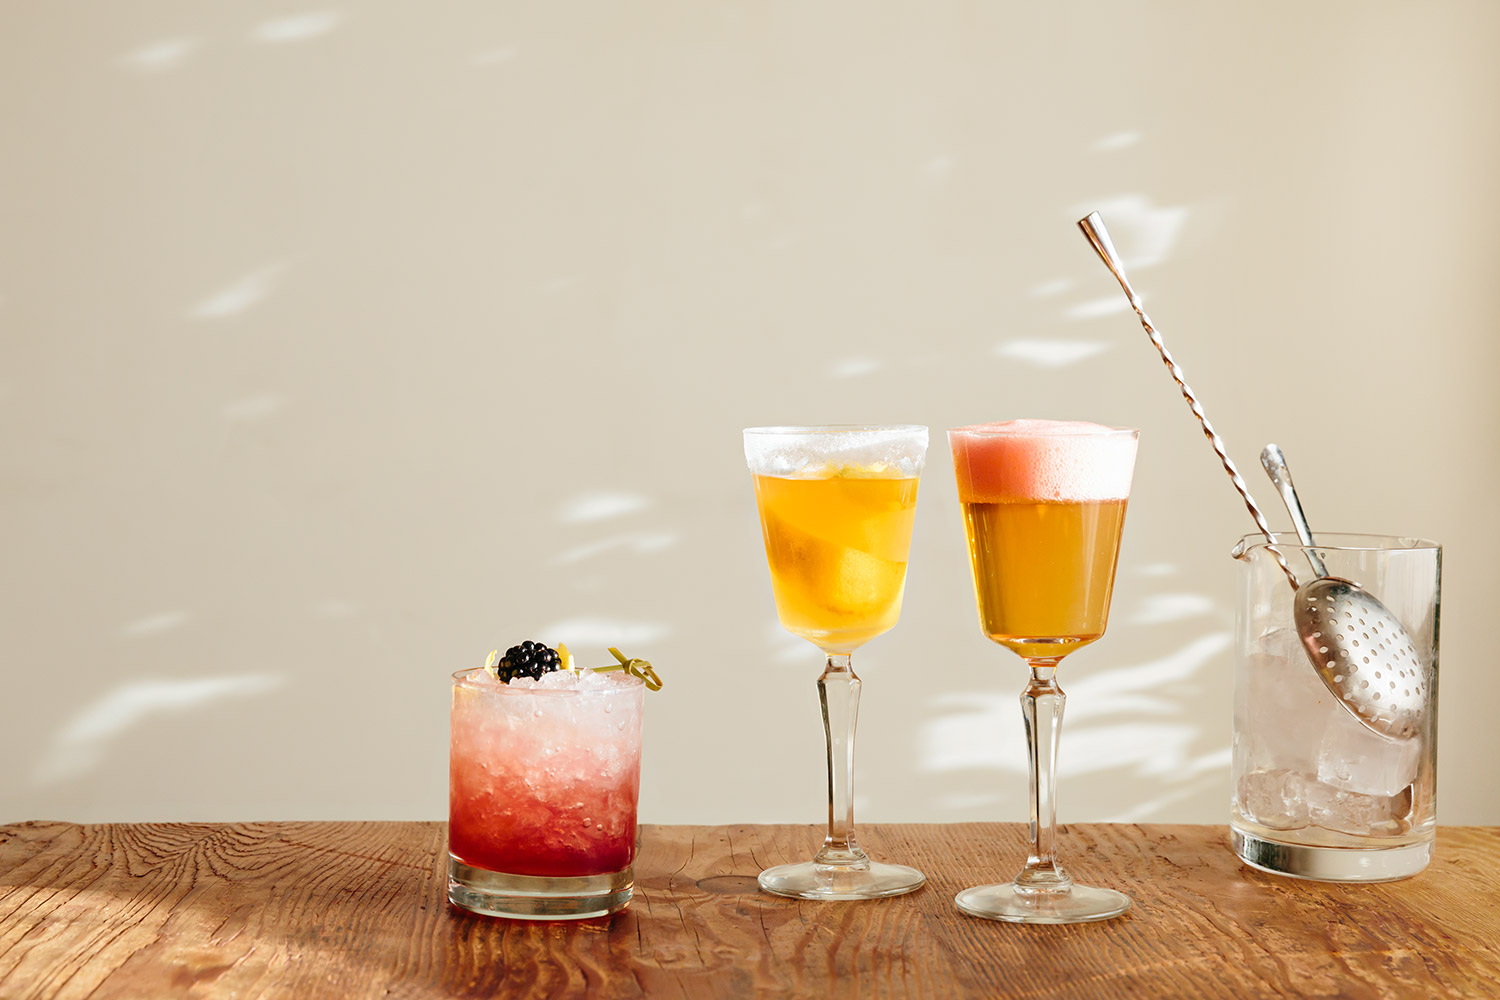 Cocktails at Finch and Fork - Santa Barbara - Kristin Teig